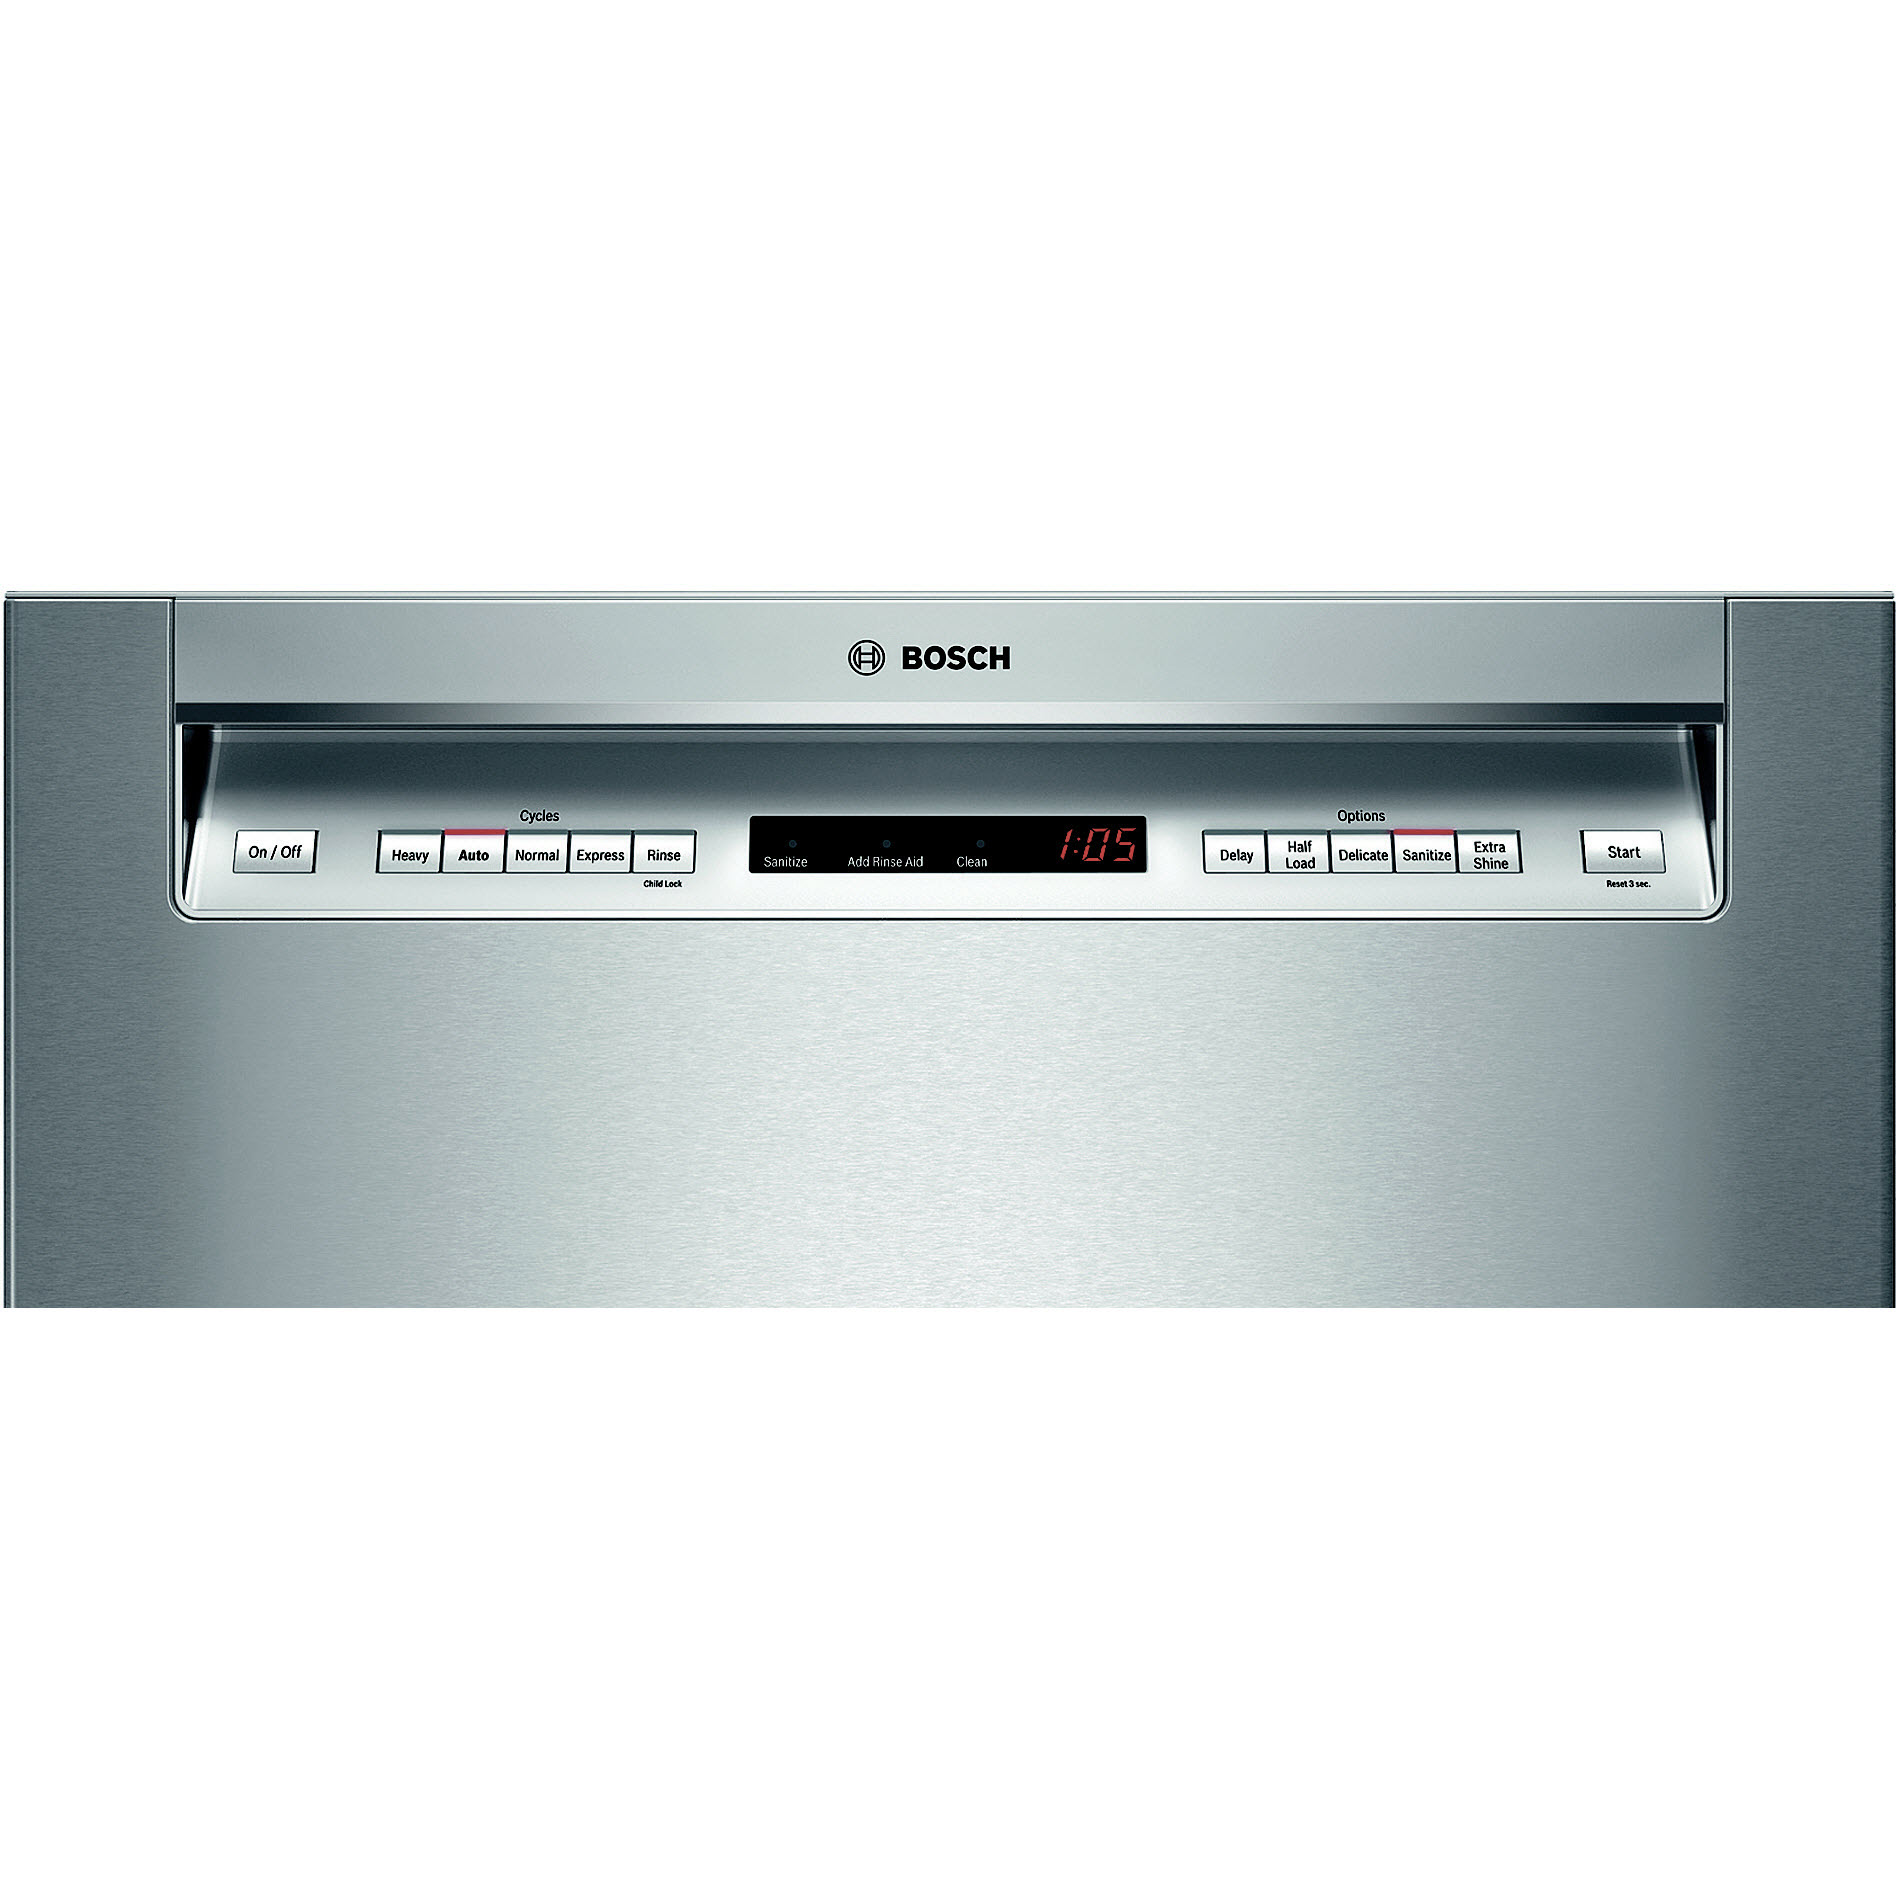 "Bosch SHE65T55UC 24"" 500 Series Built-In Dishwasher - Stainless Steel"